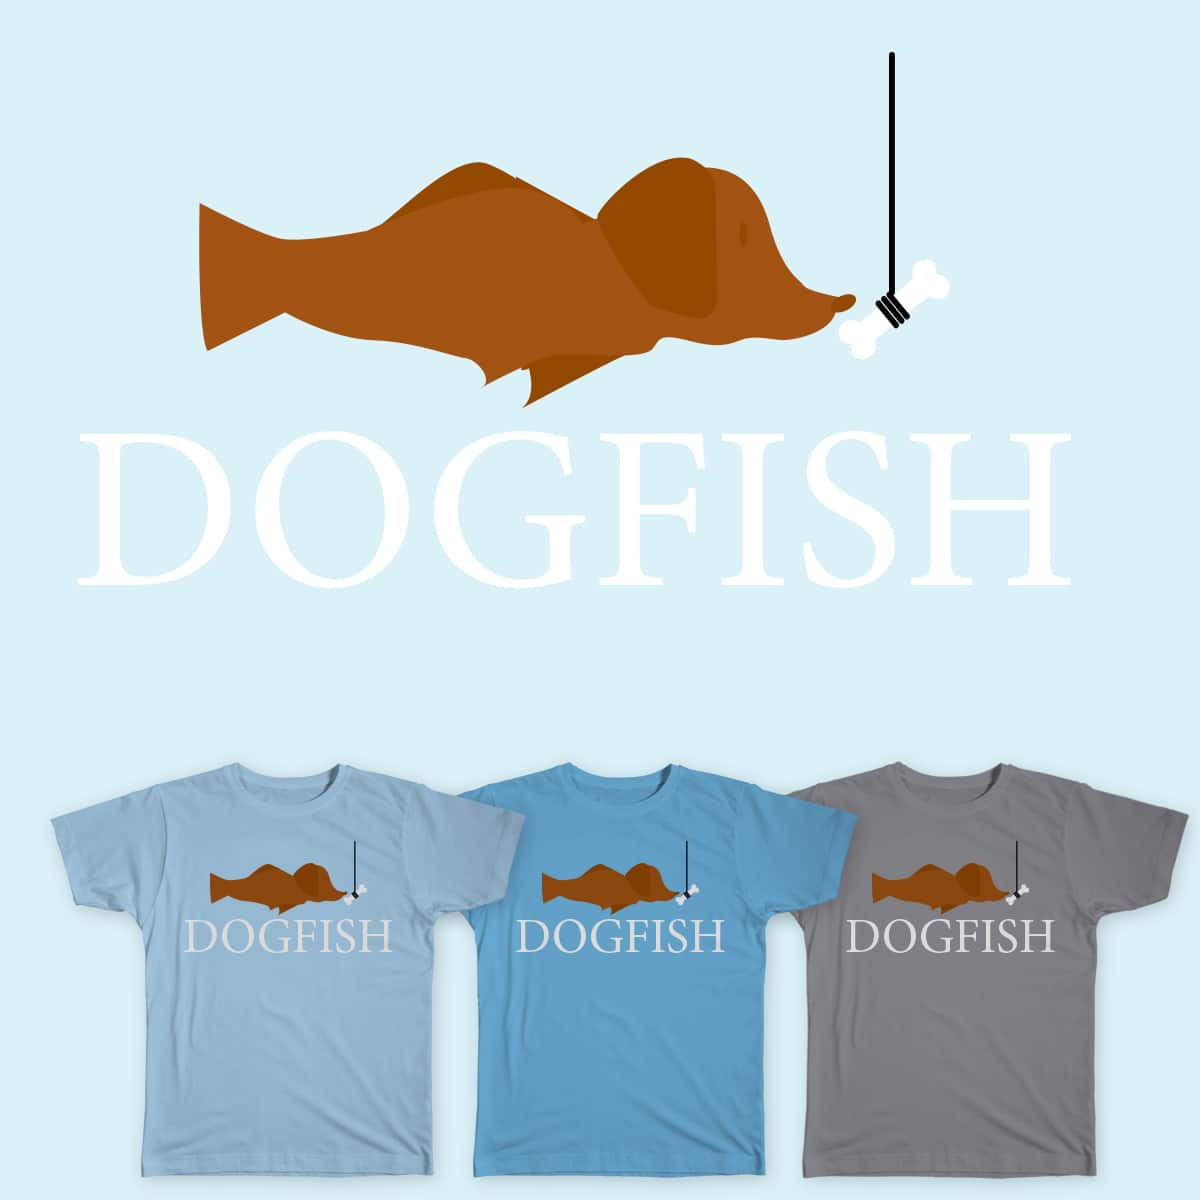 Dogfish by gerardkwq on Threadless